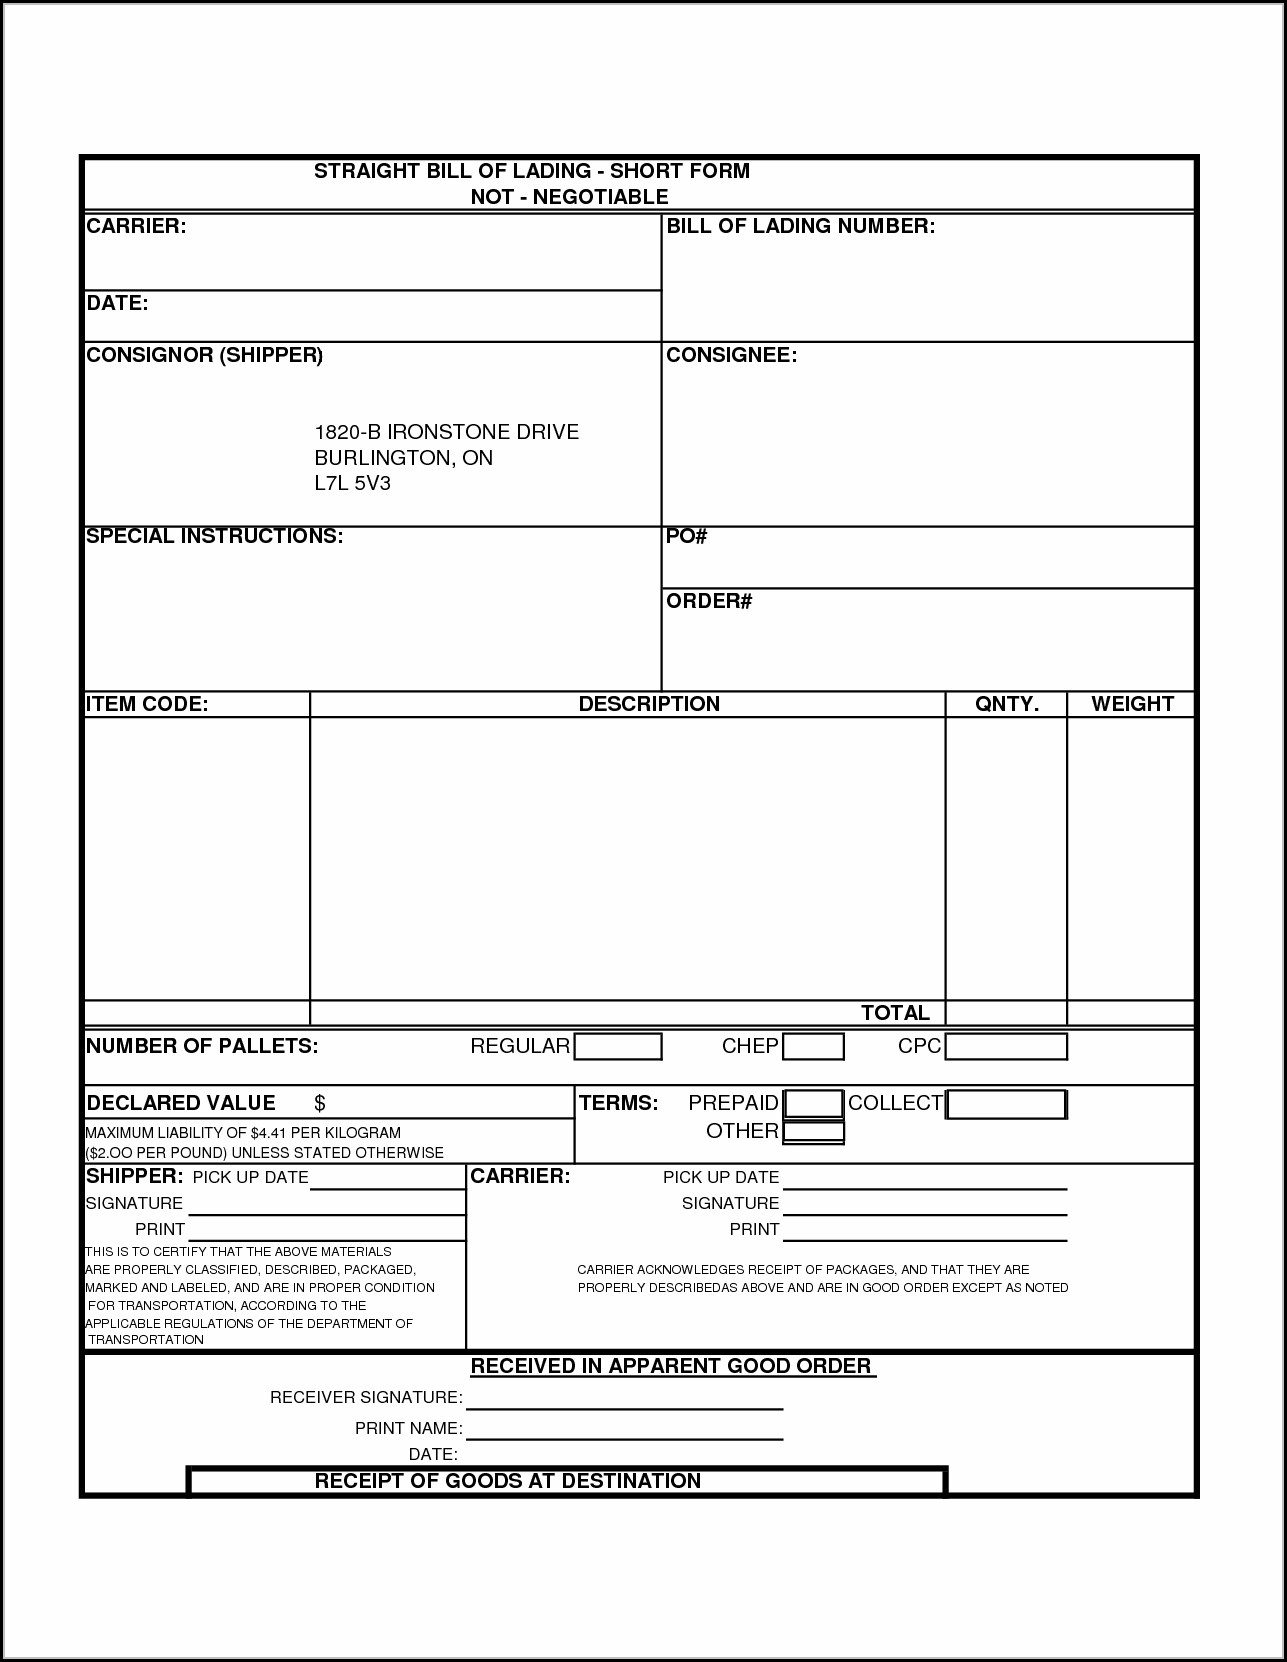 Free Printable Straight Bill Of Lading Short Form